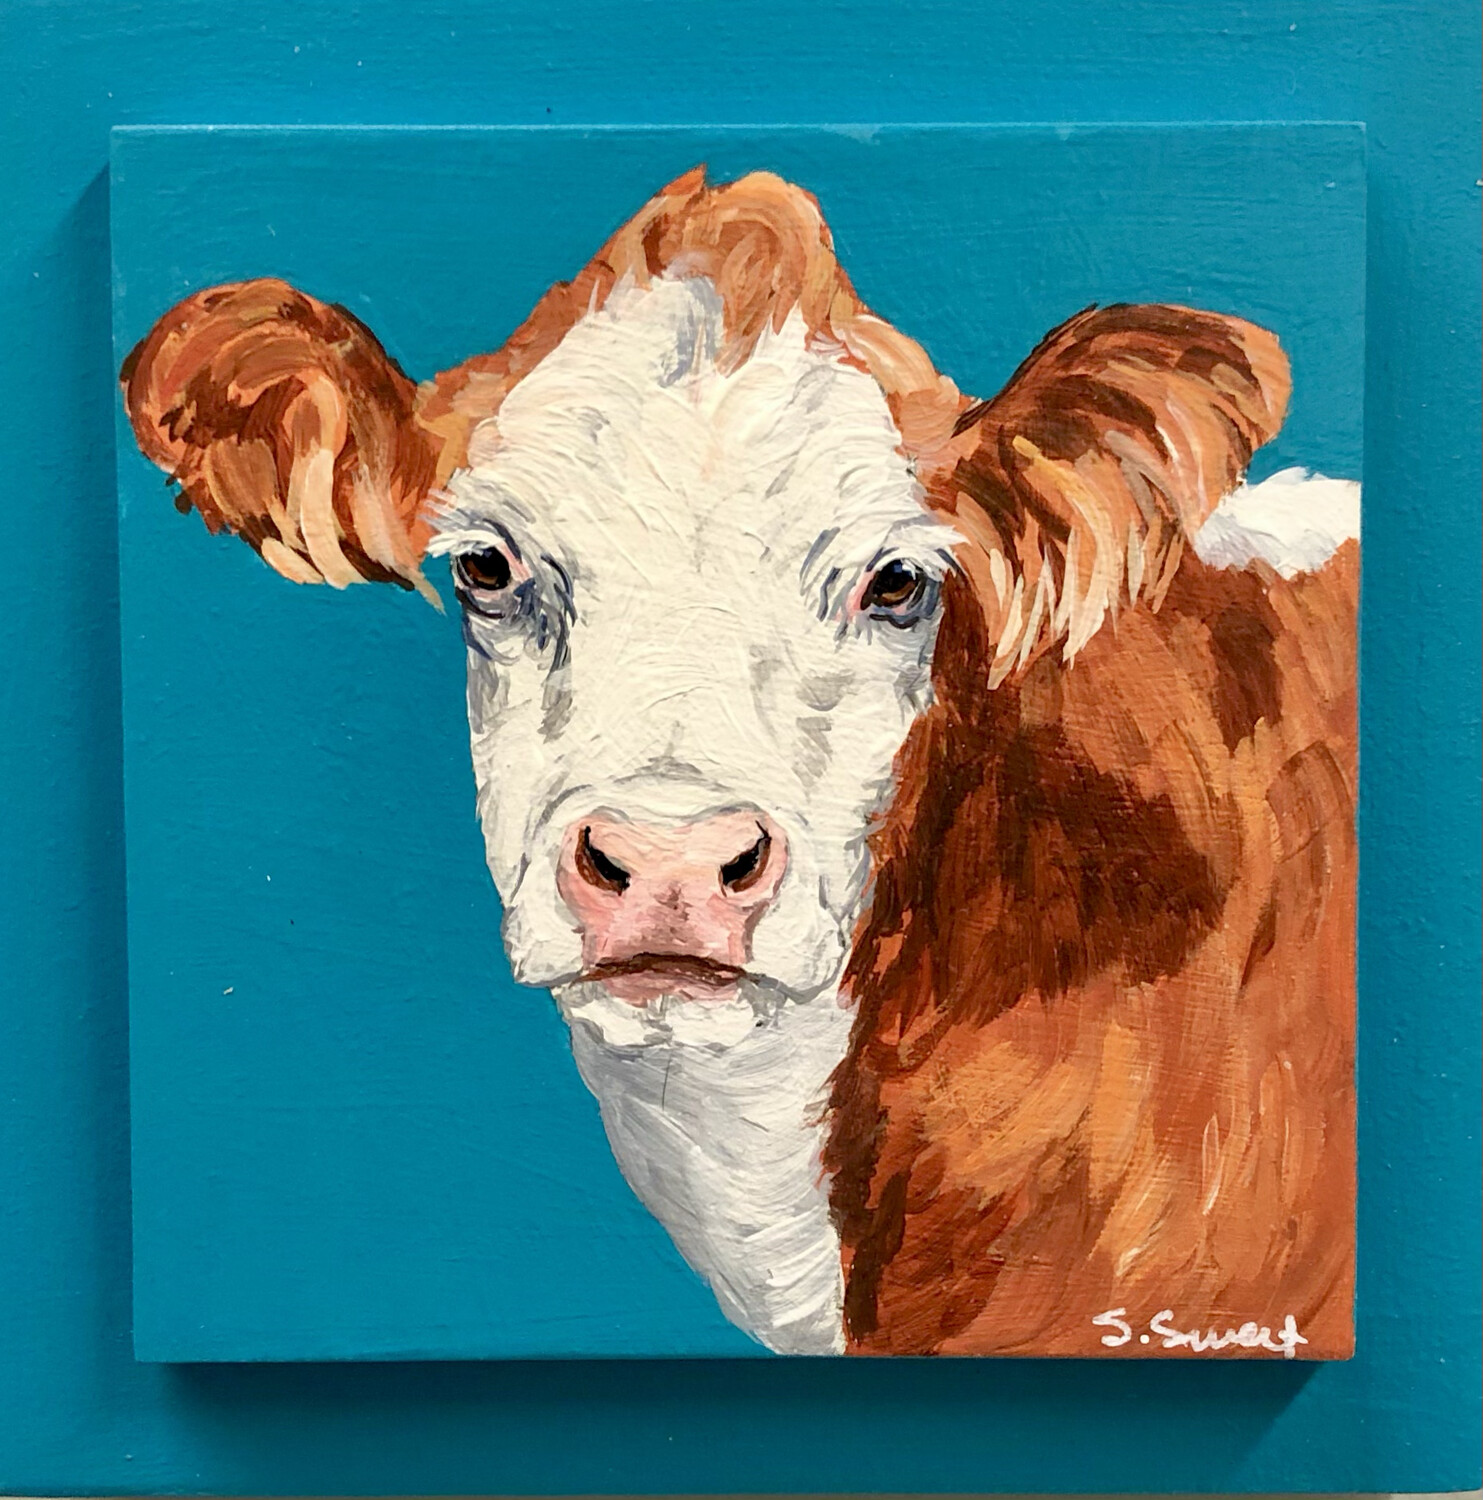 Simmental Cow on Spring Teal